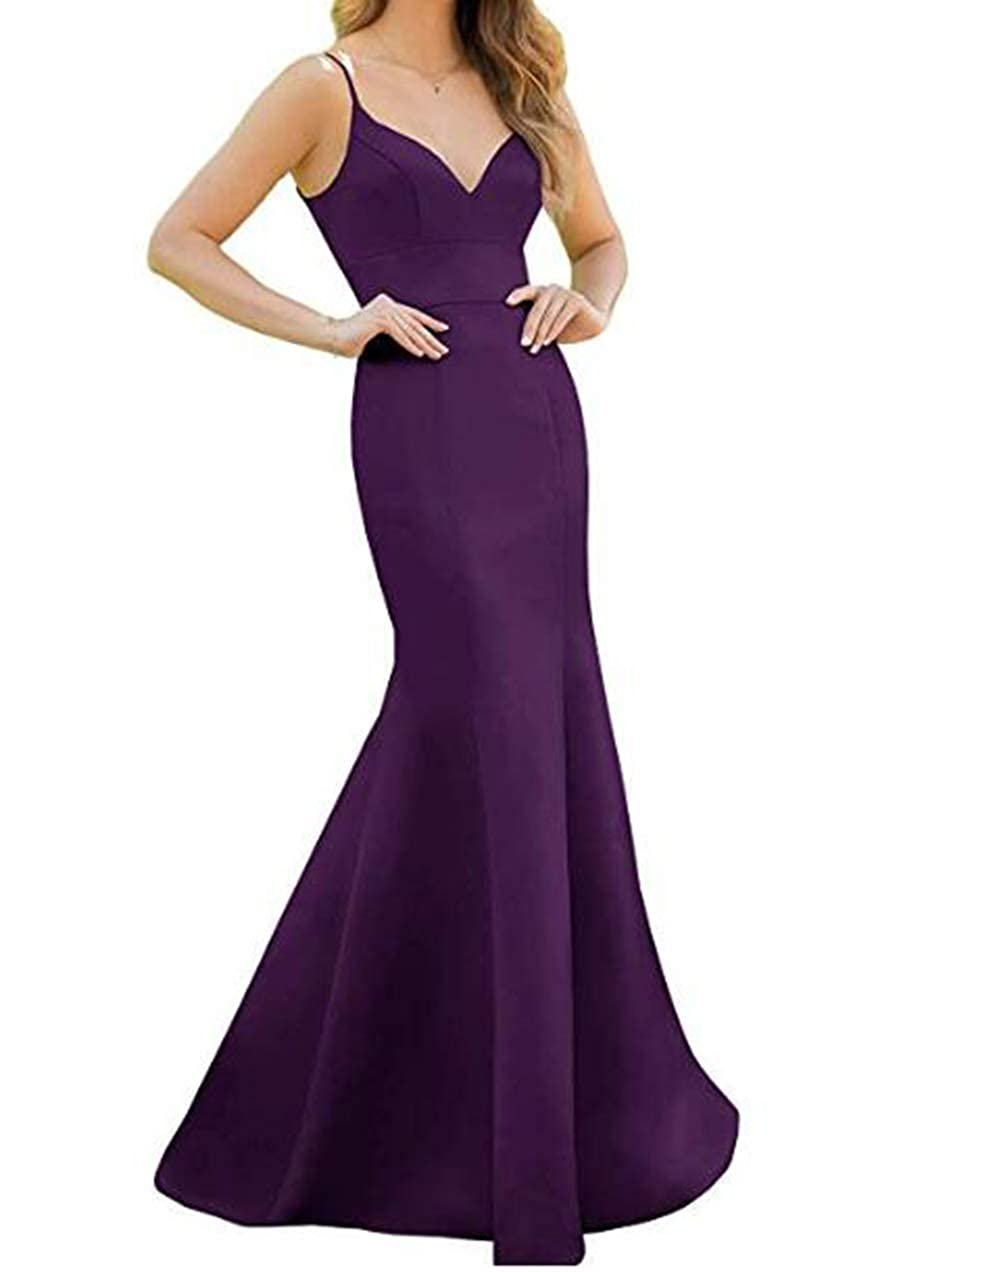 Plum Tsbridal Women's Spaghetti Straps Satin Bridesmaid Dress Long Mermaid V Neck Formal Prom Evening Party Dresses